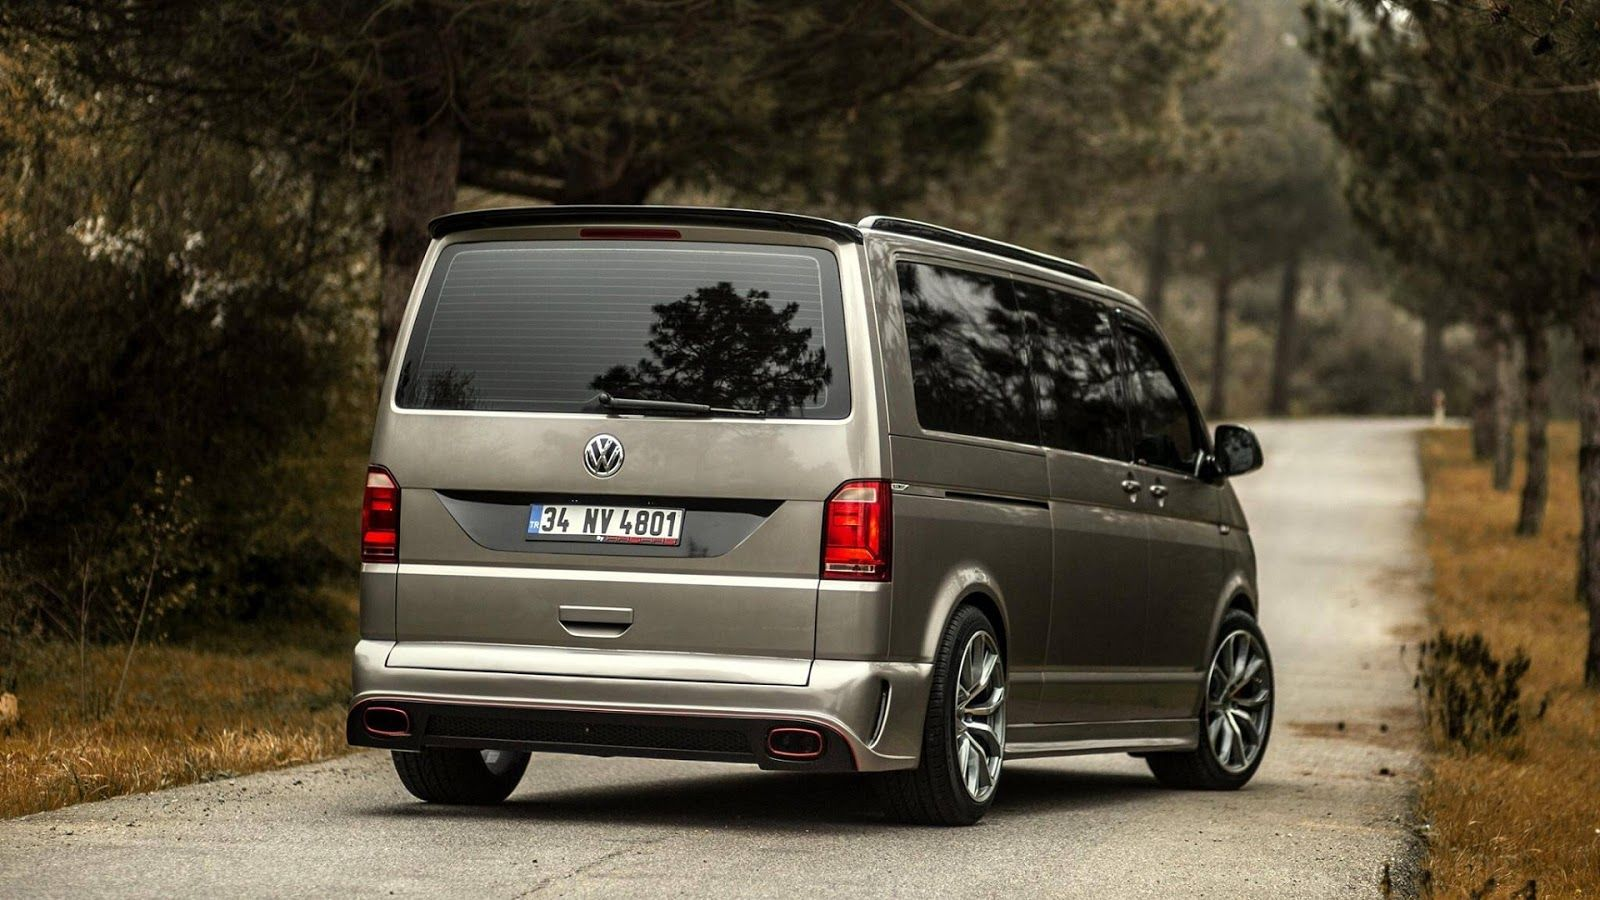 volkswagen multivan v i p t6 volkswagen volkswagen. Black Bedroom Furniture Sets. Home Design Ideas